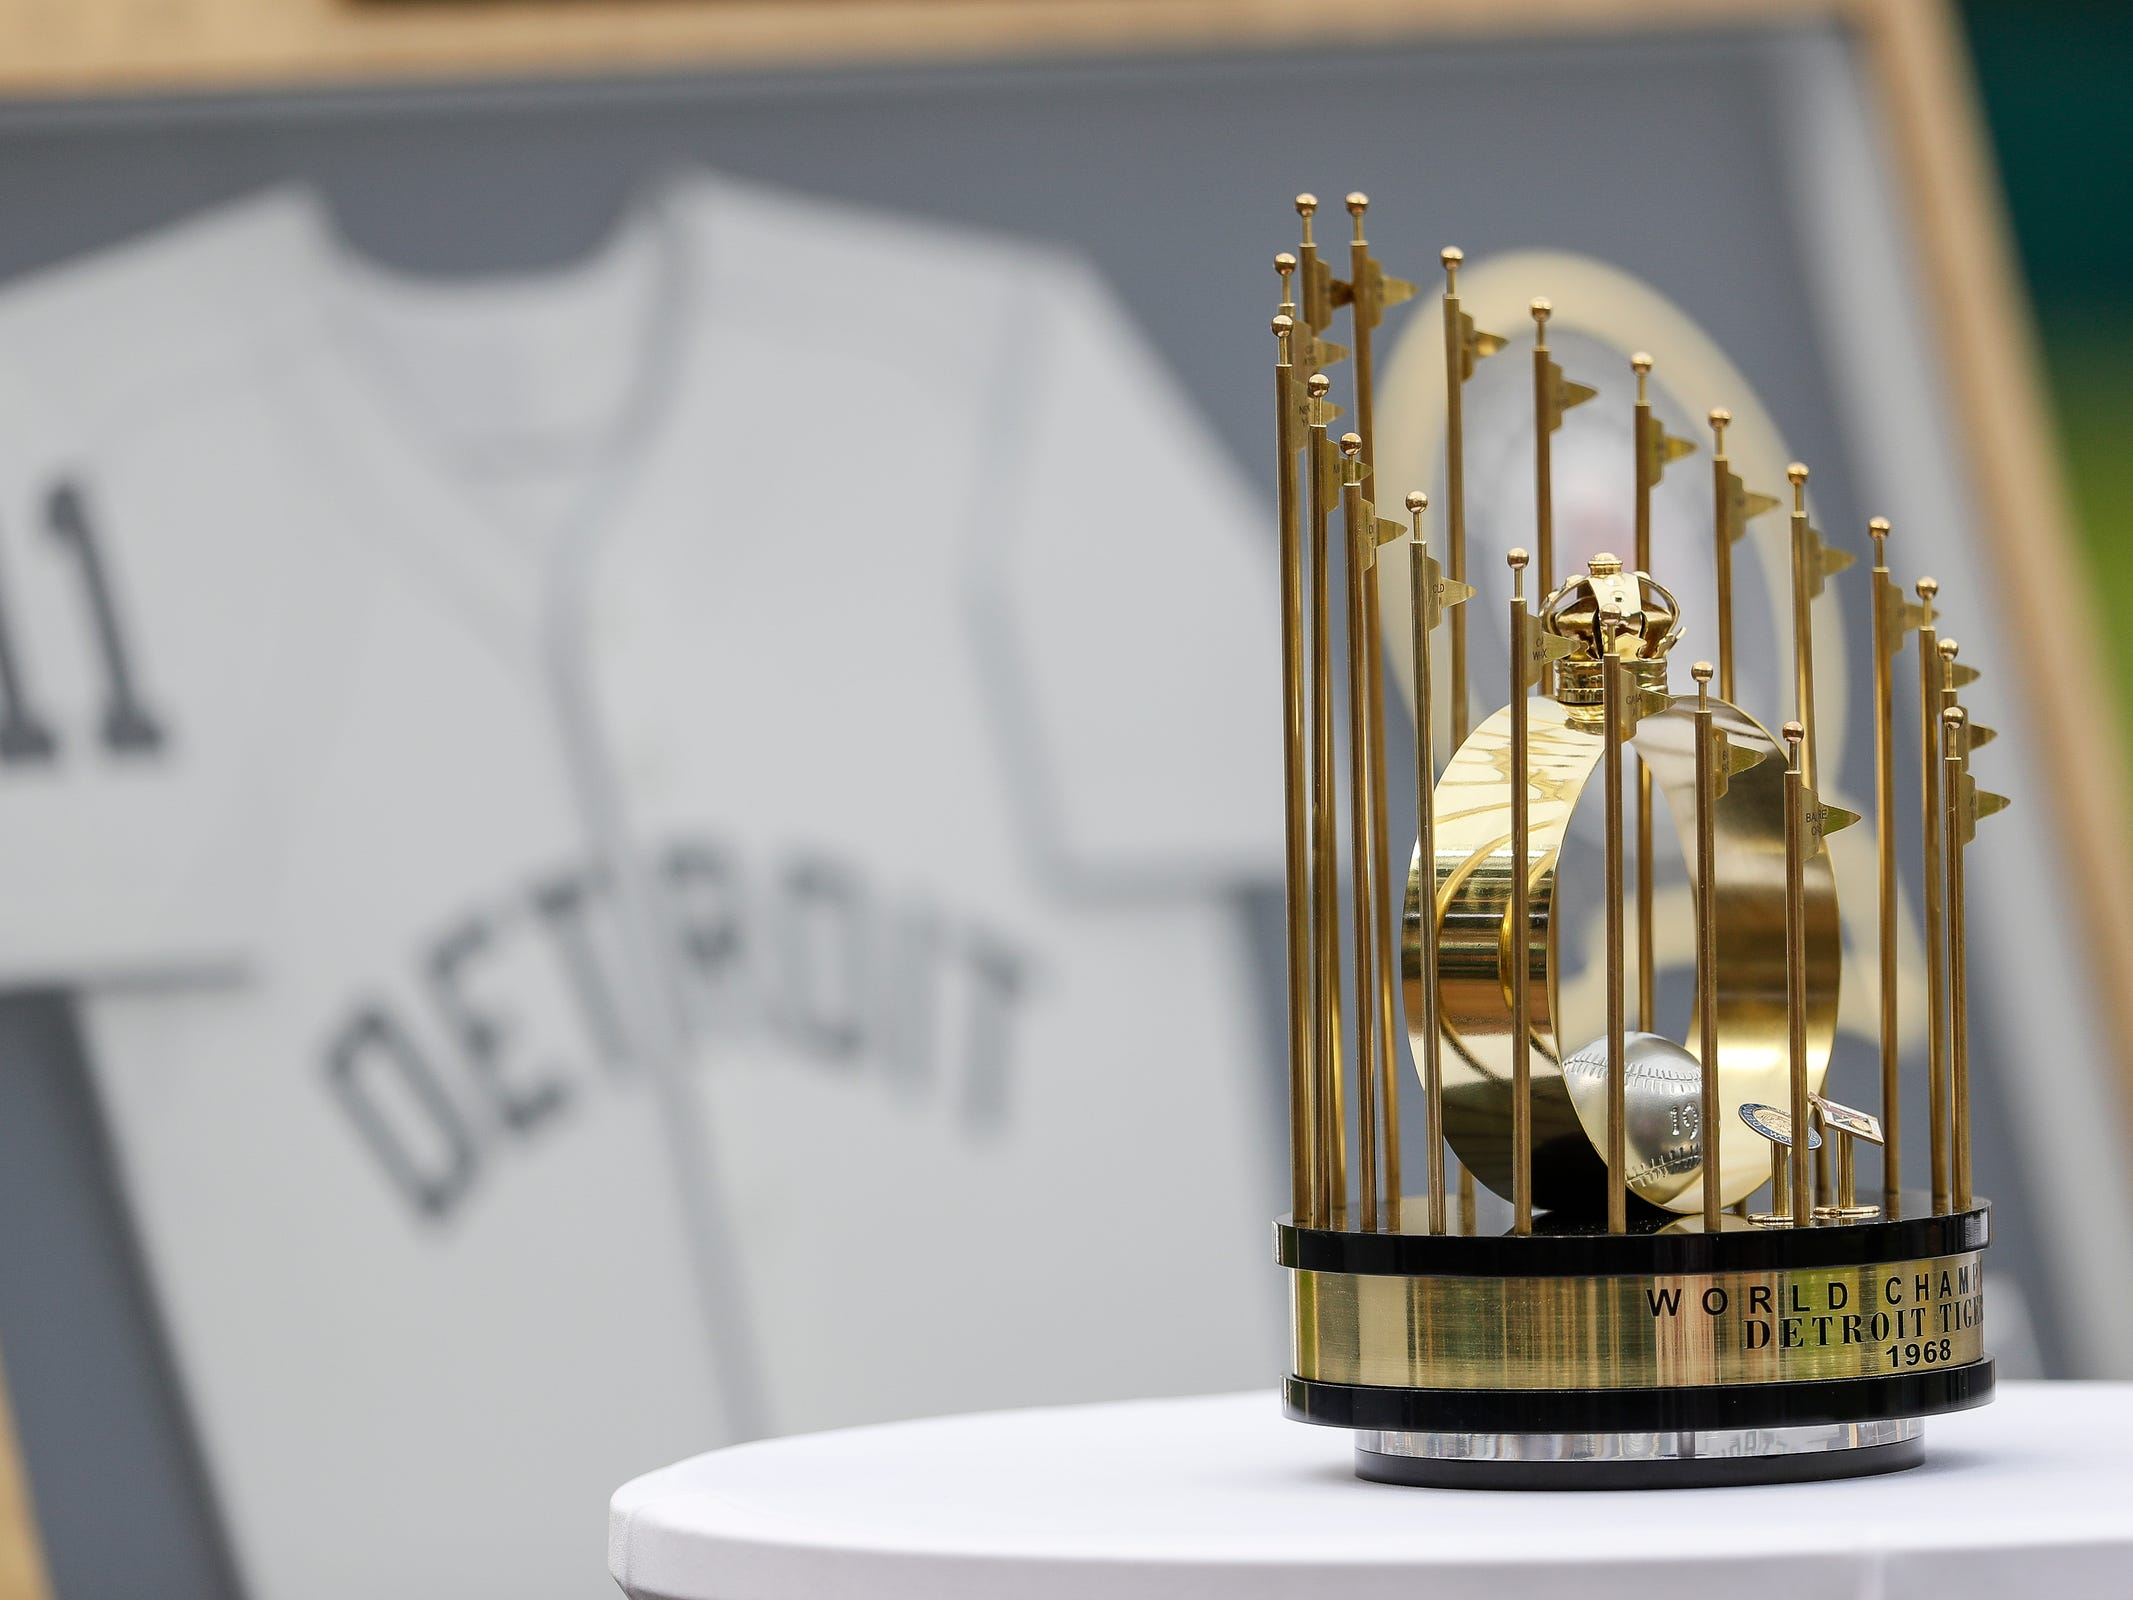 A replica of the 1968 World Series championship trophy is presented to the Detroit Tigers on the 50th anniversary of 1968 World Series championship at Comerica Park in Detroit, Saturday, Sept. 8, 2018.